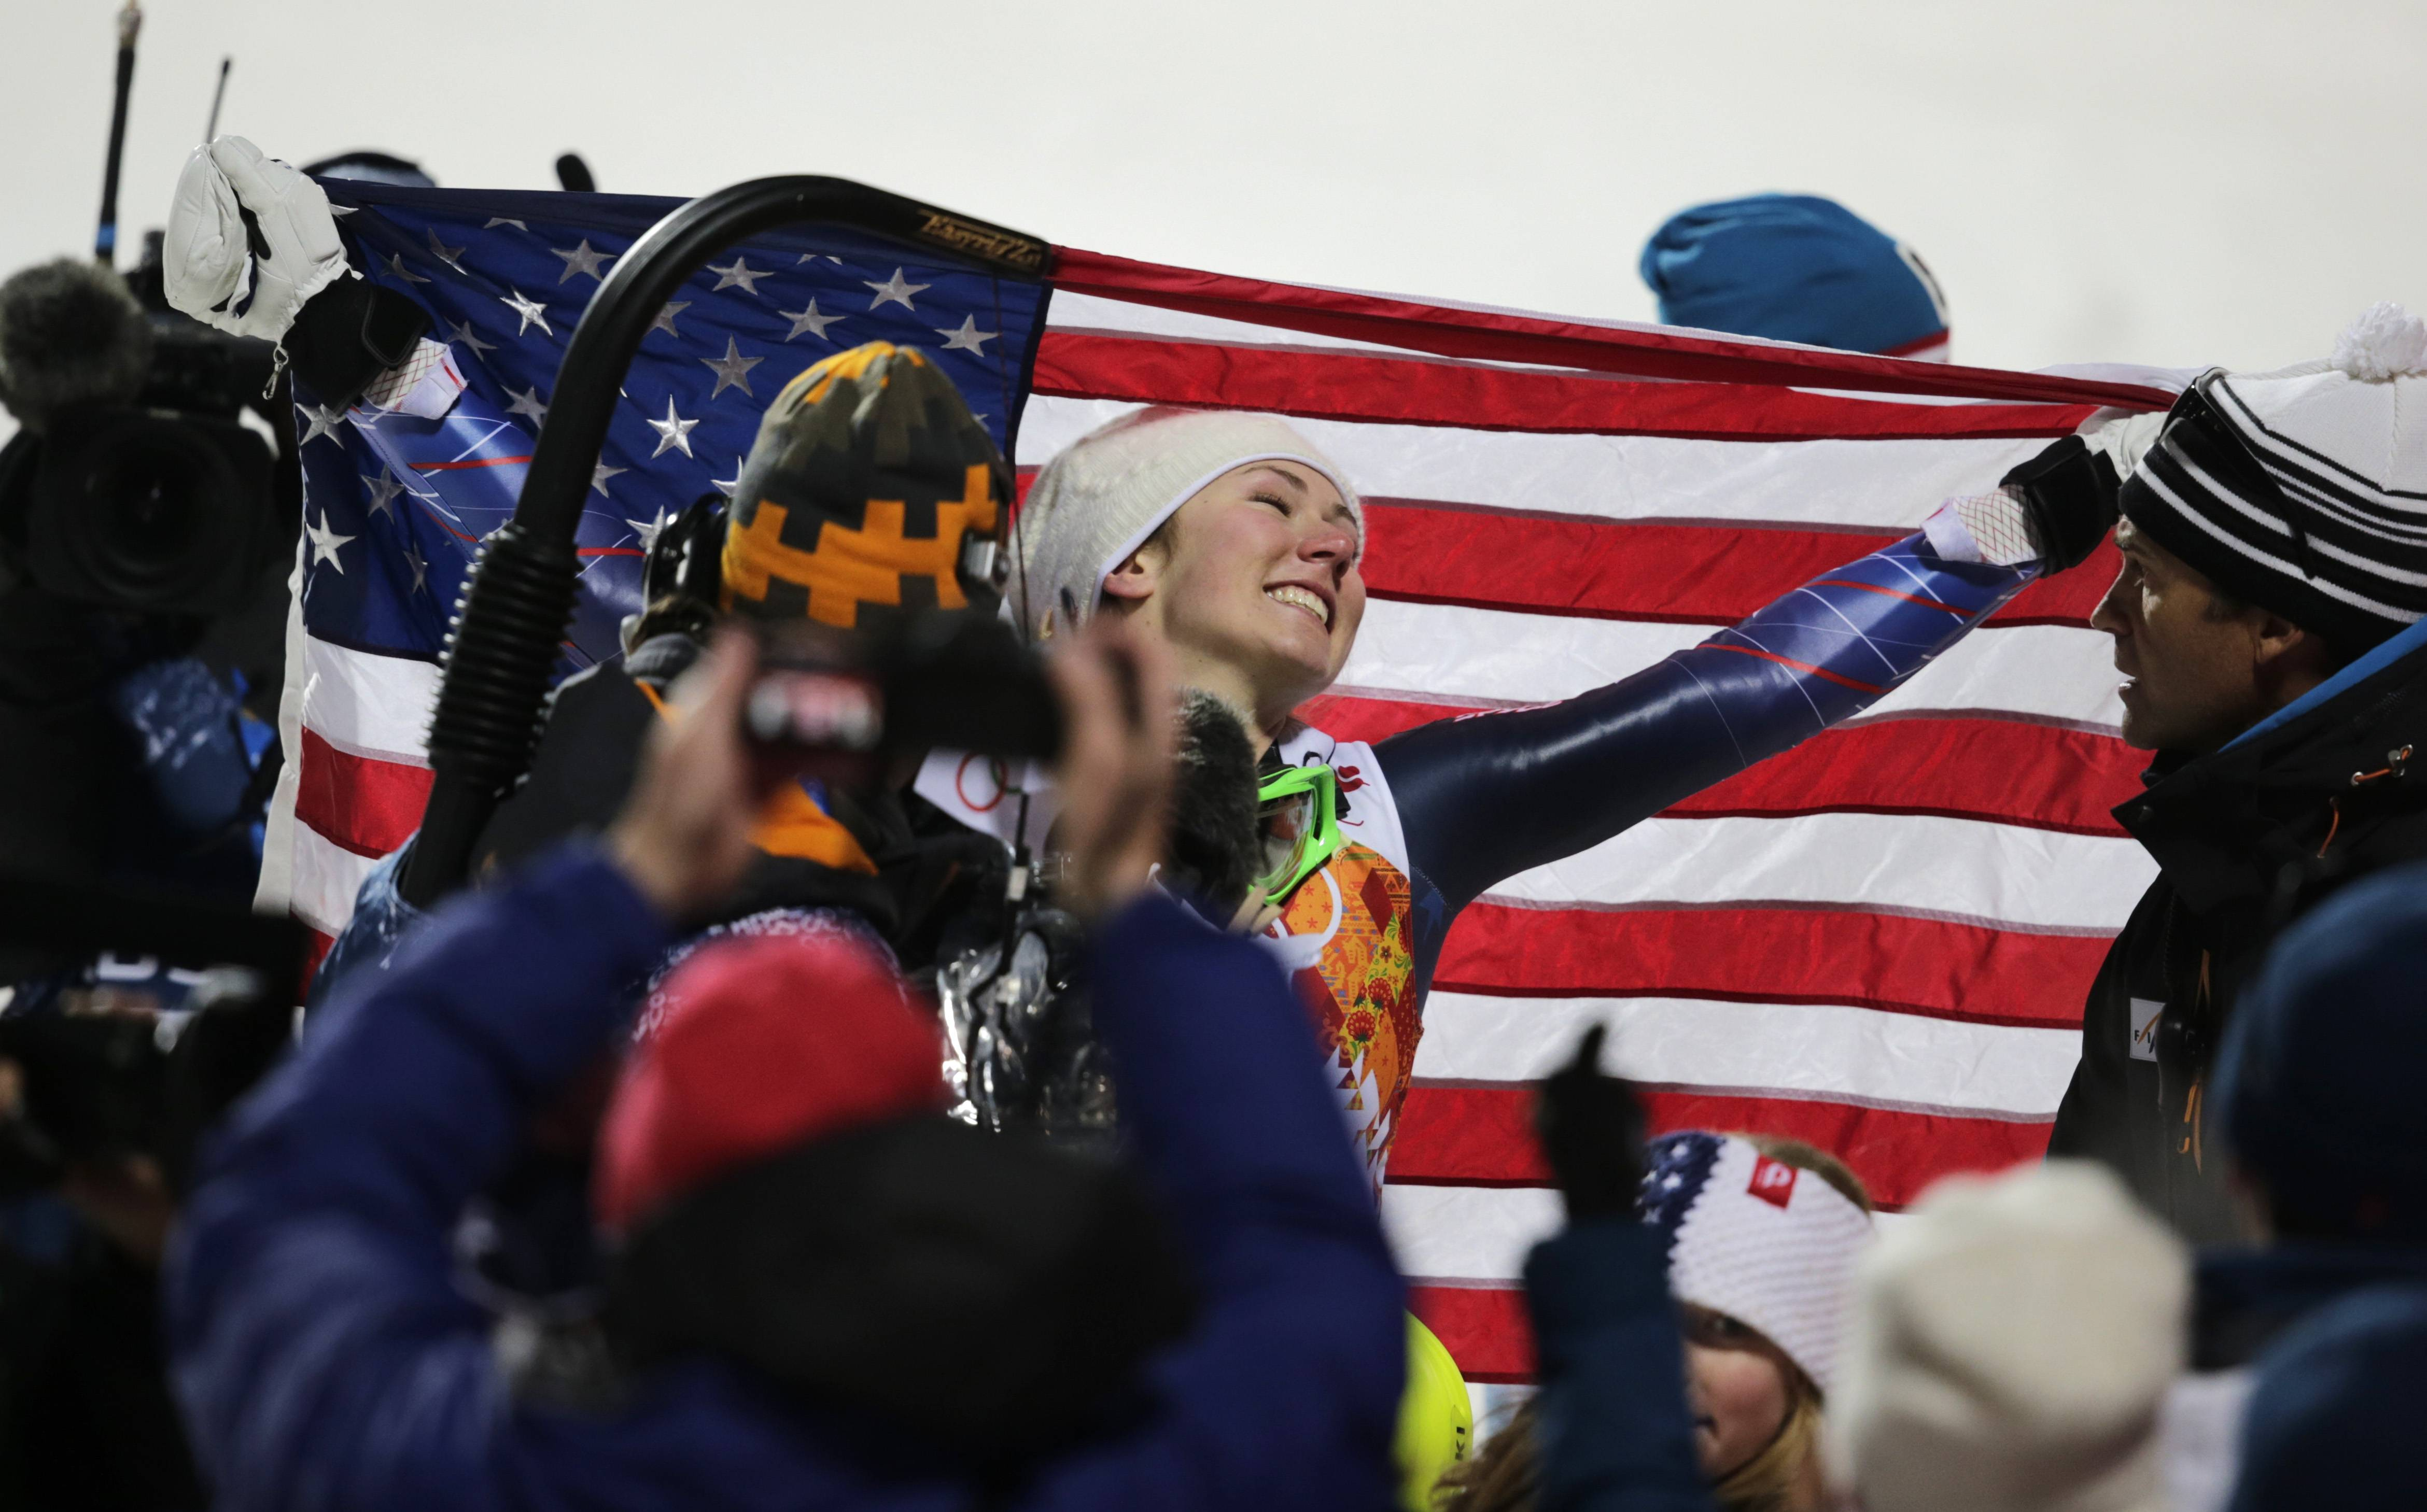 United States' Mikaela Shiffrin poses with the American flag after winning the gold medal in the women's slalom.